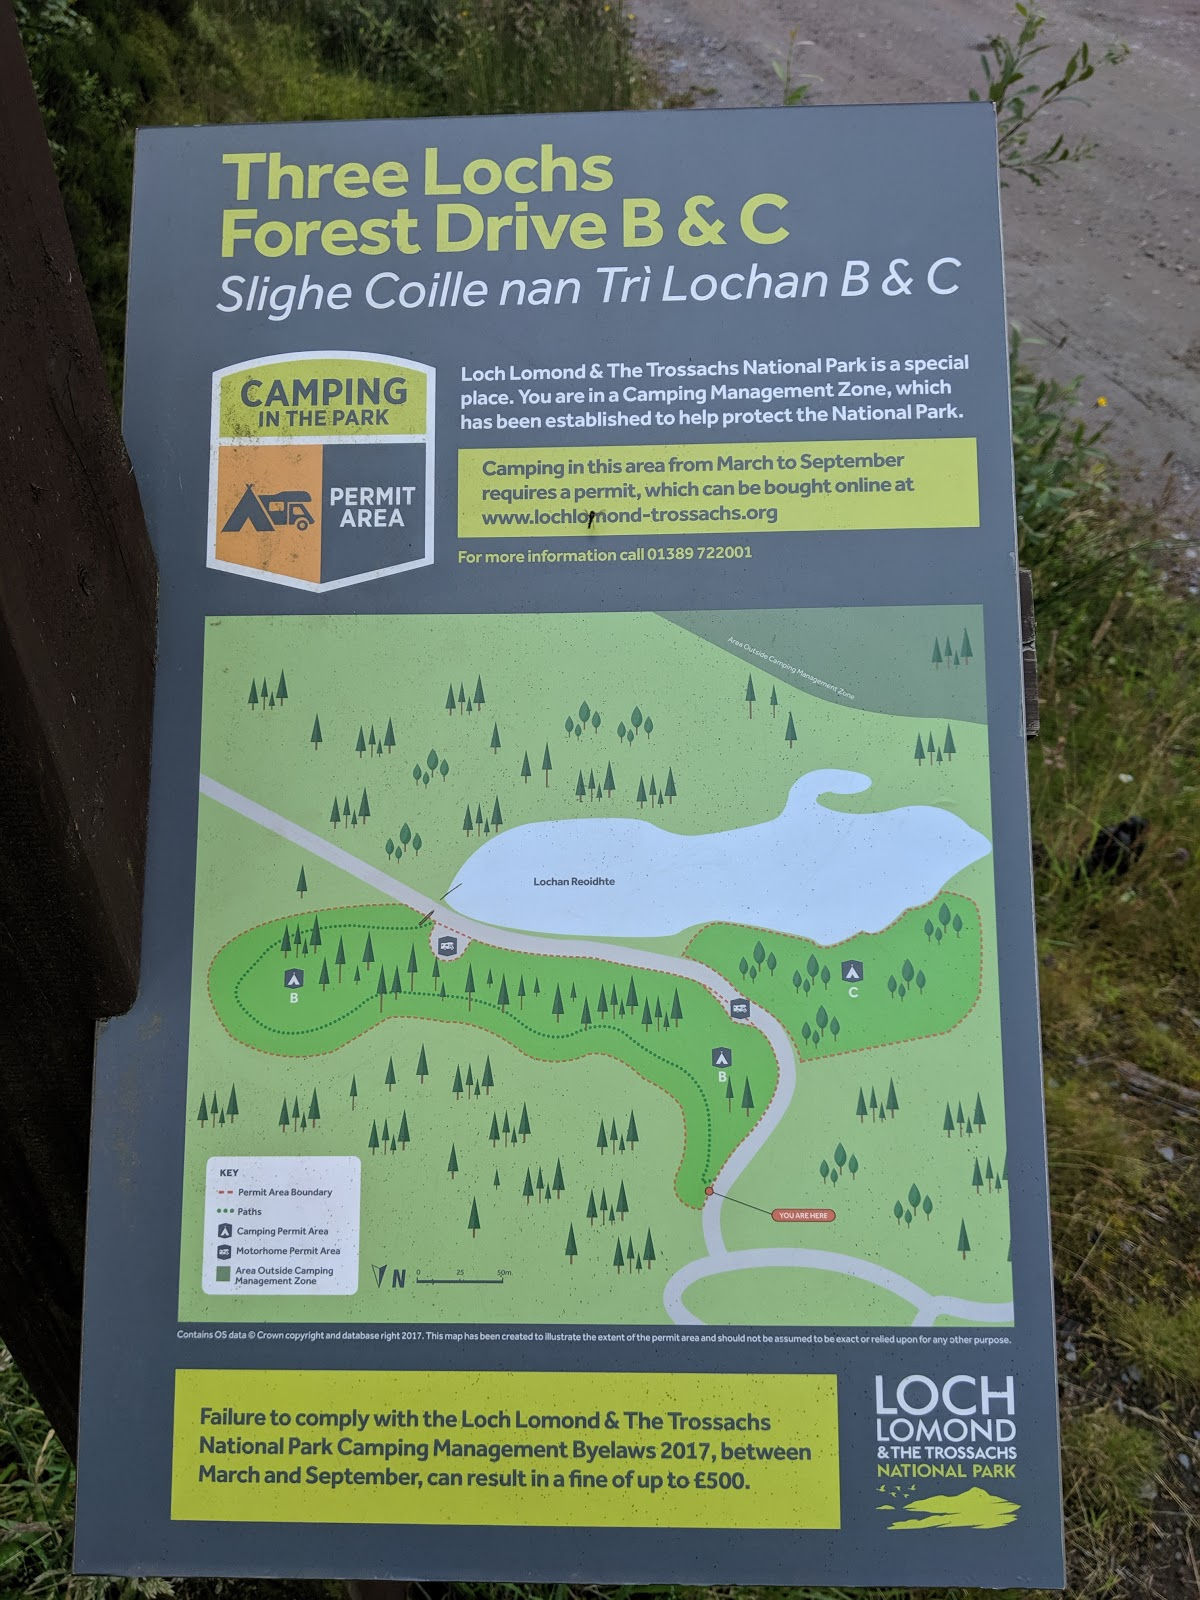 A Short Break at Cameron Lodges, Loch Lomond - Three Lochs Forest Drive info sign